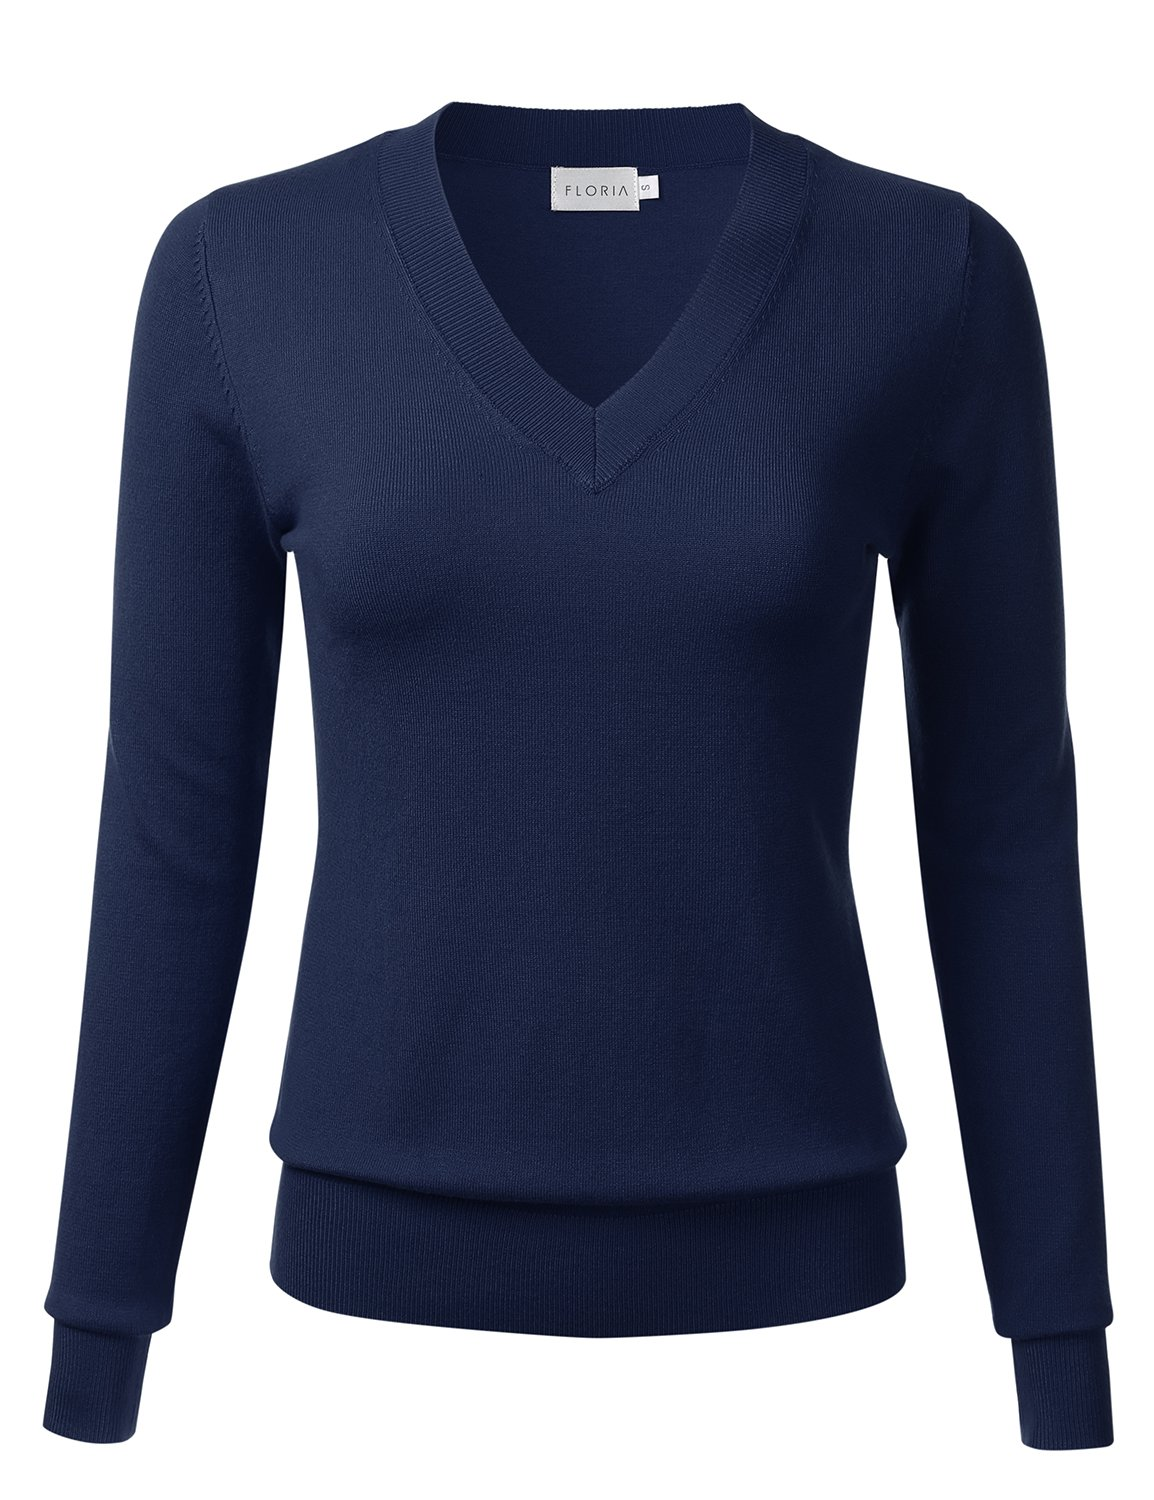 FLORIA Womens Soft Basic Thick V-Neck Pullover Long Sleeve Knit Sweater Navy L